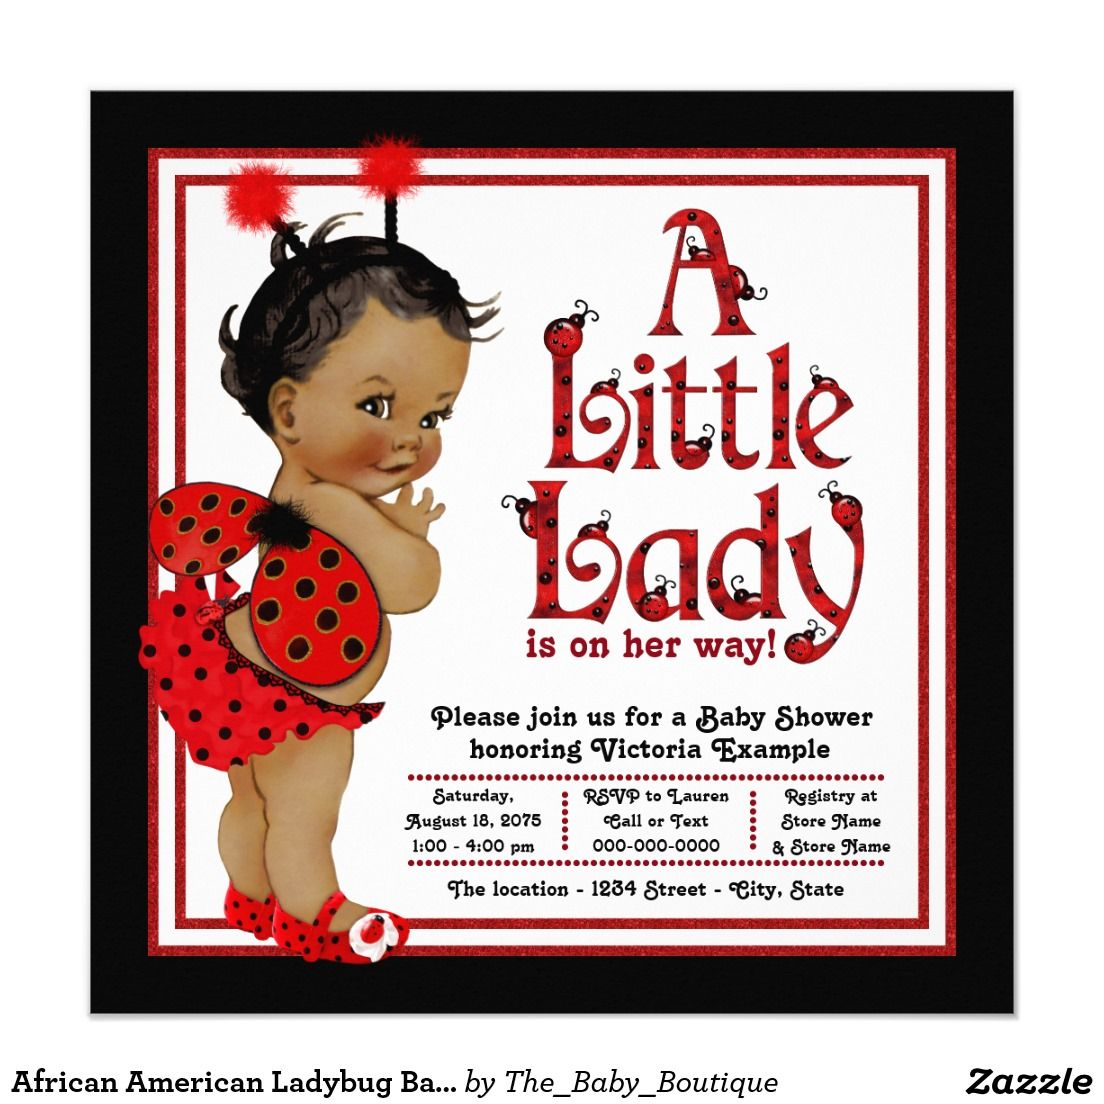 African American Ladybug Baby Shower Card | baby shower | Pinterest